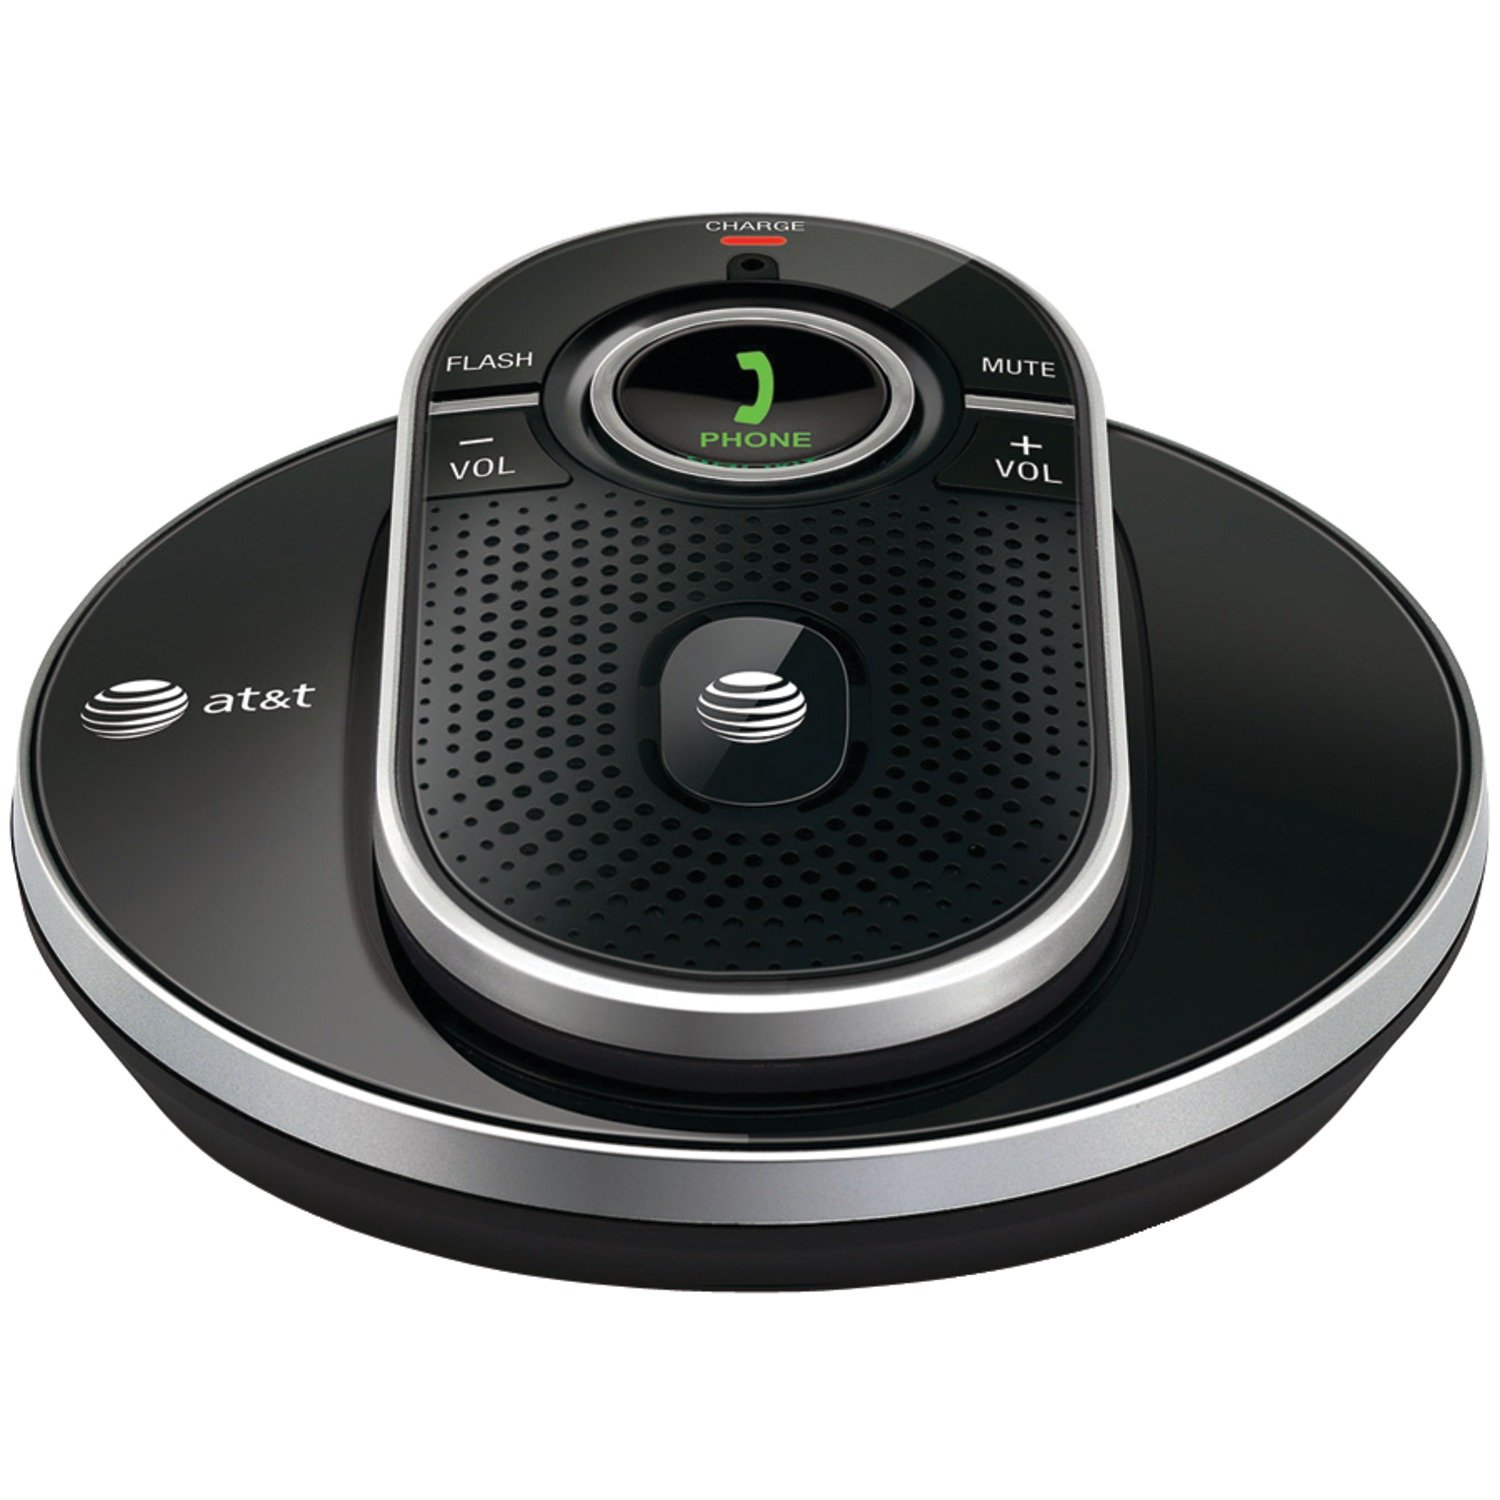 AT&T TL80133 Cordless Accessory Speakerphone with Dect 6.0 Technology